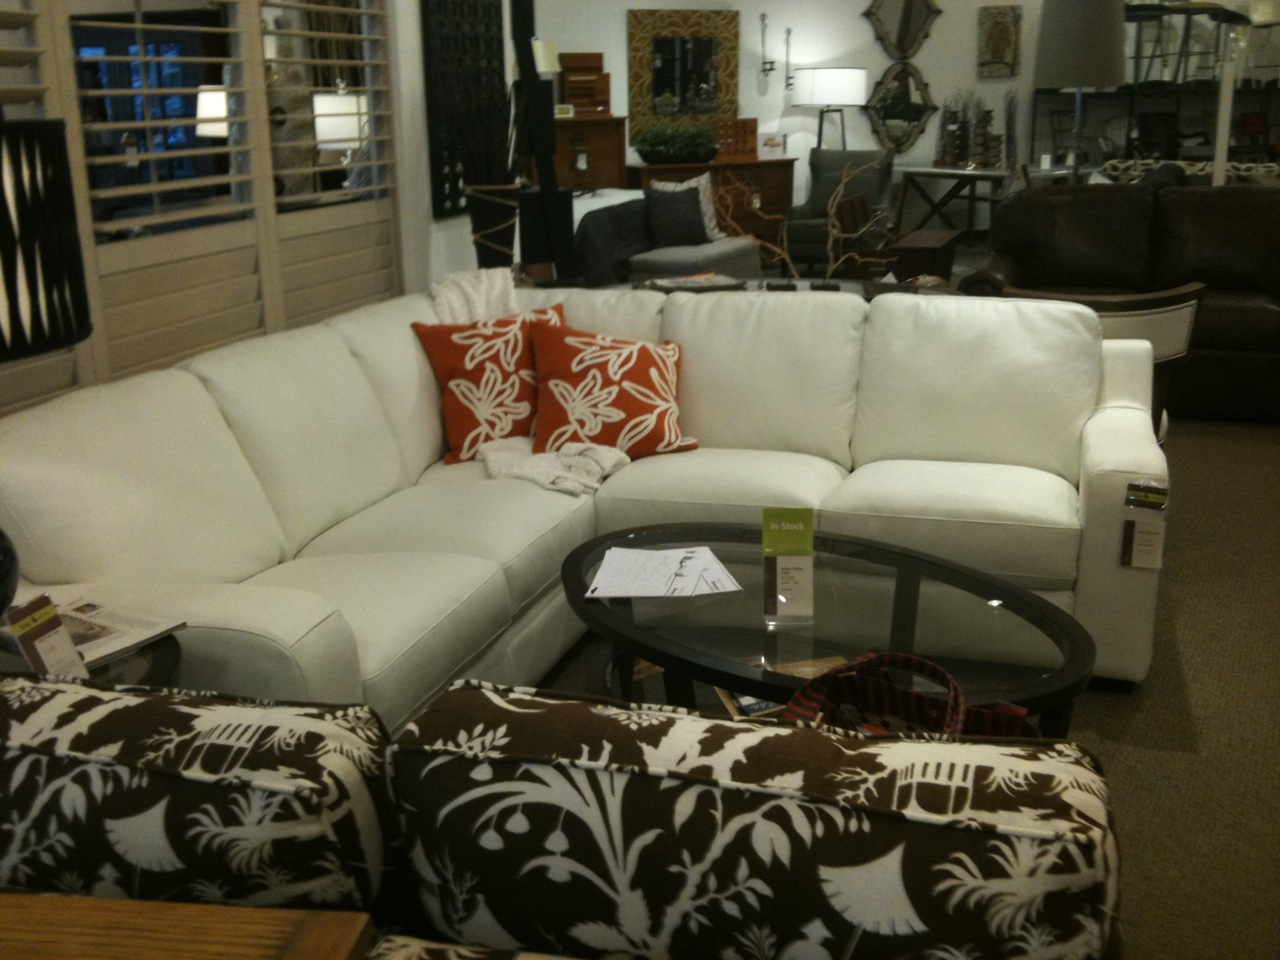 Sectional Sofa | escape from bk